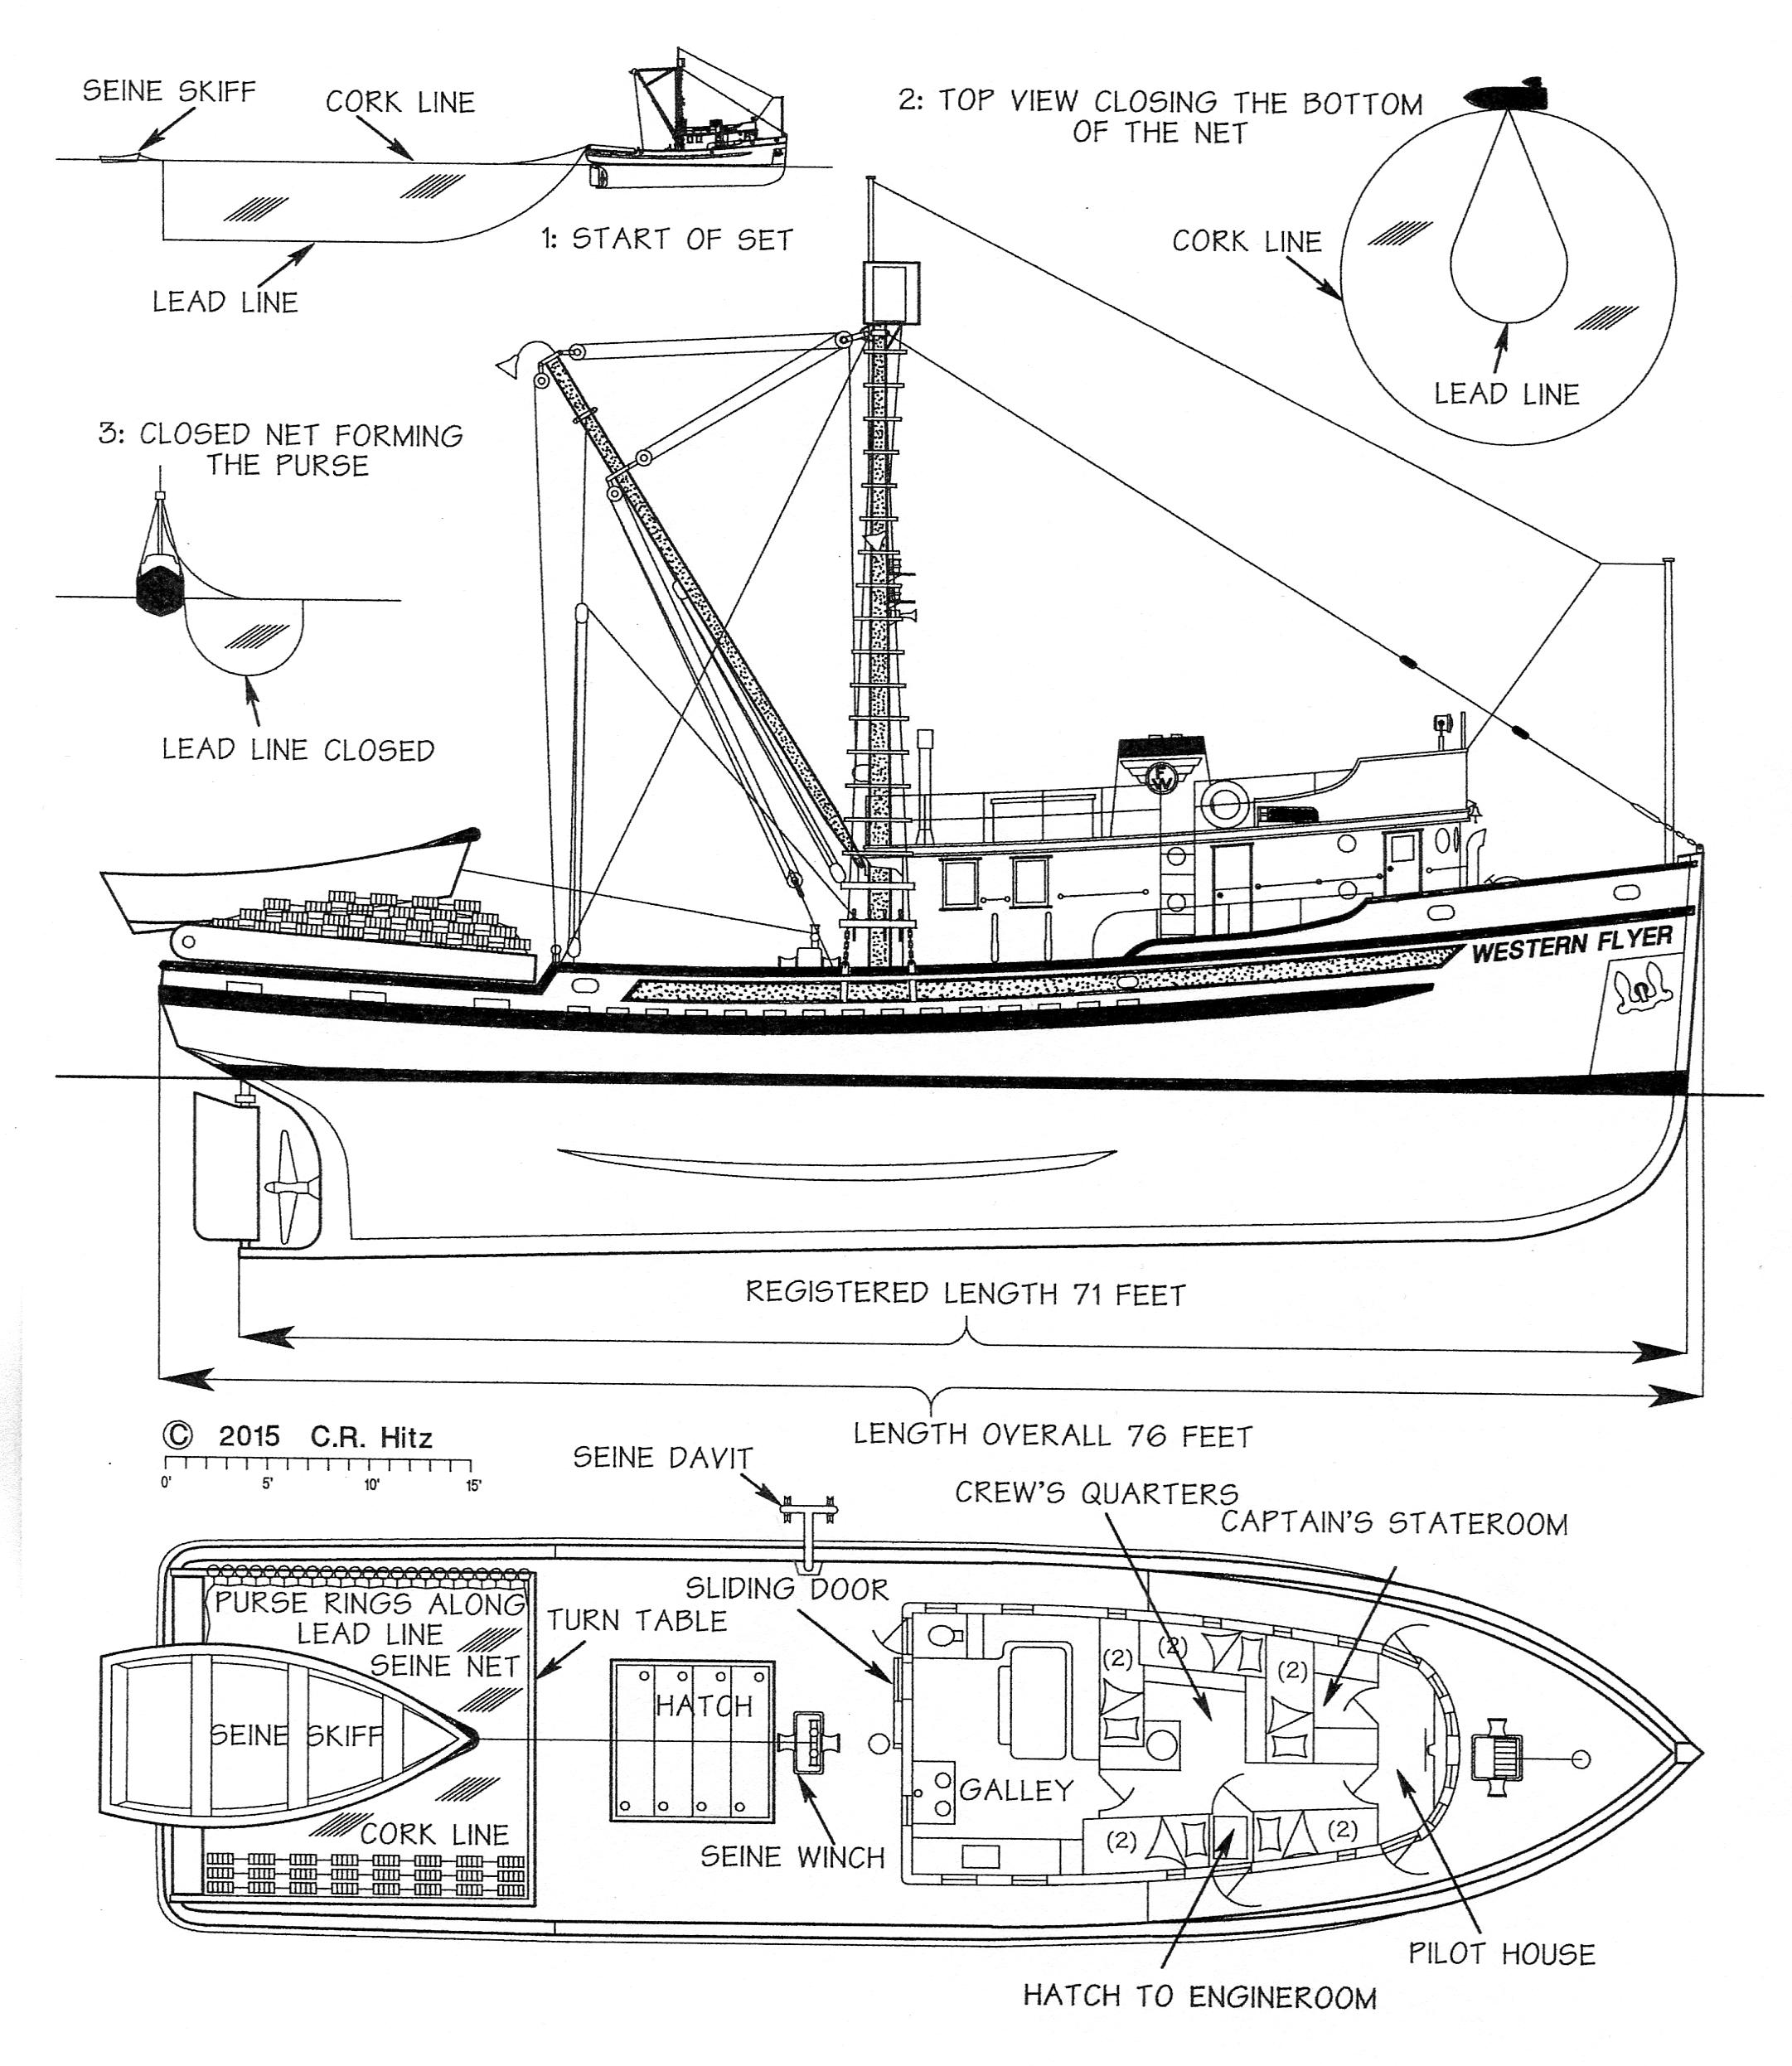 Western Flyer Built As A Seiner